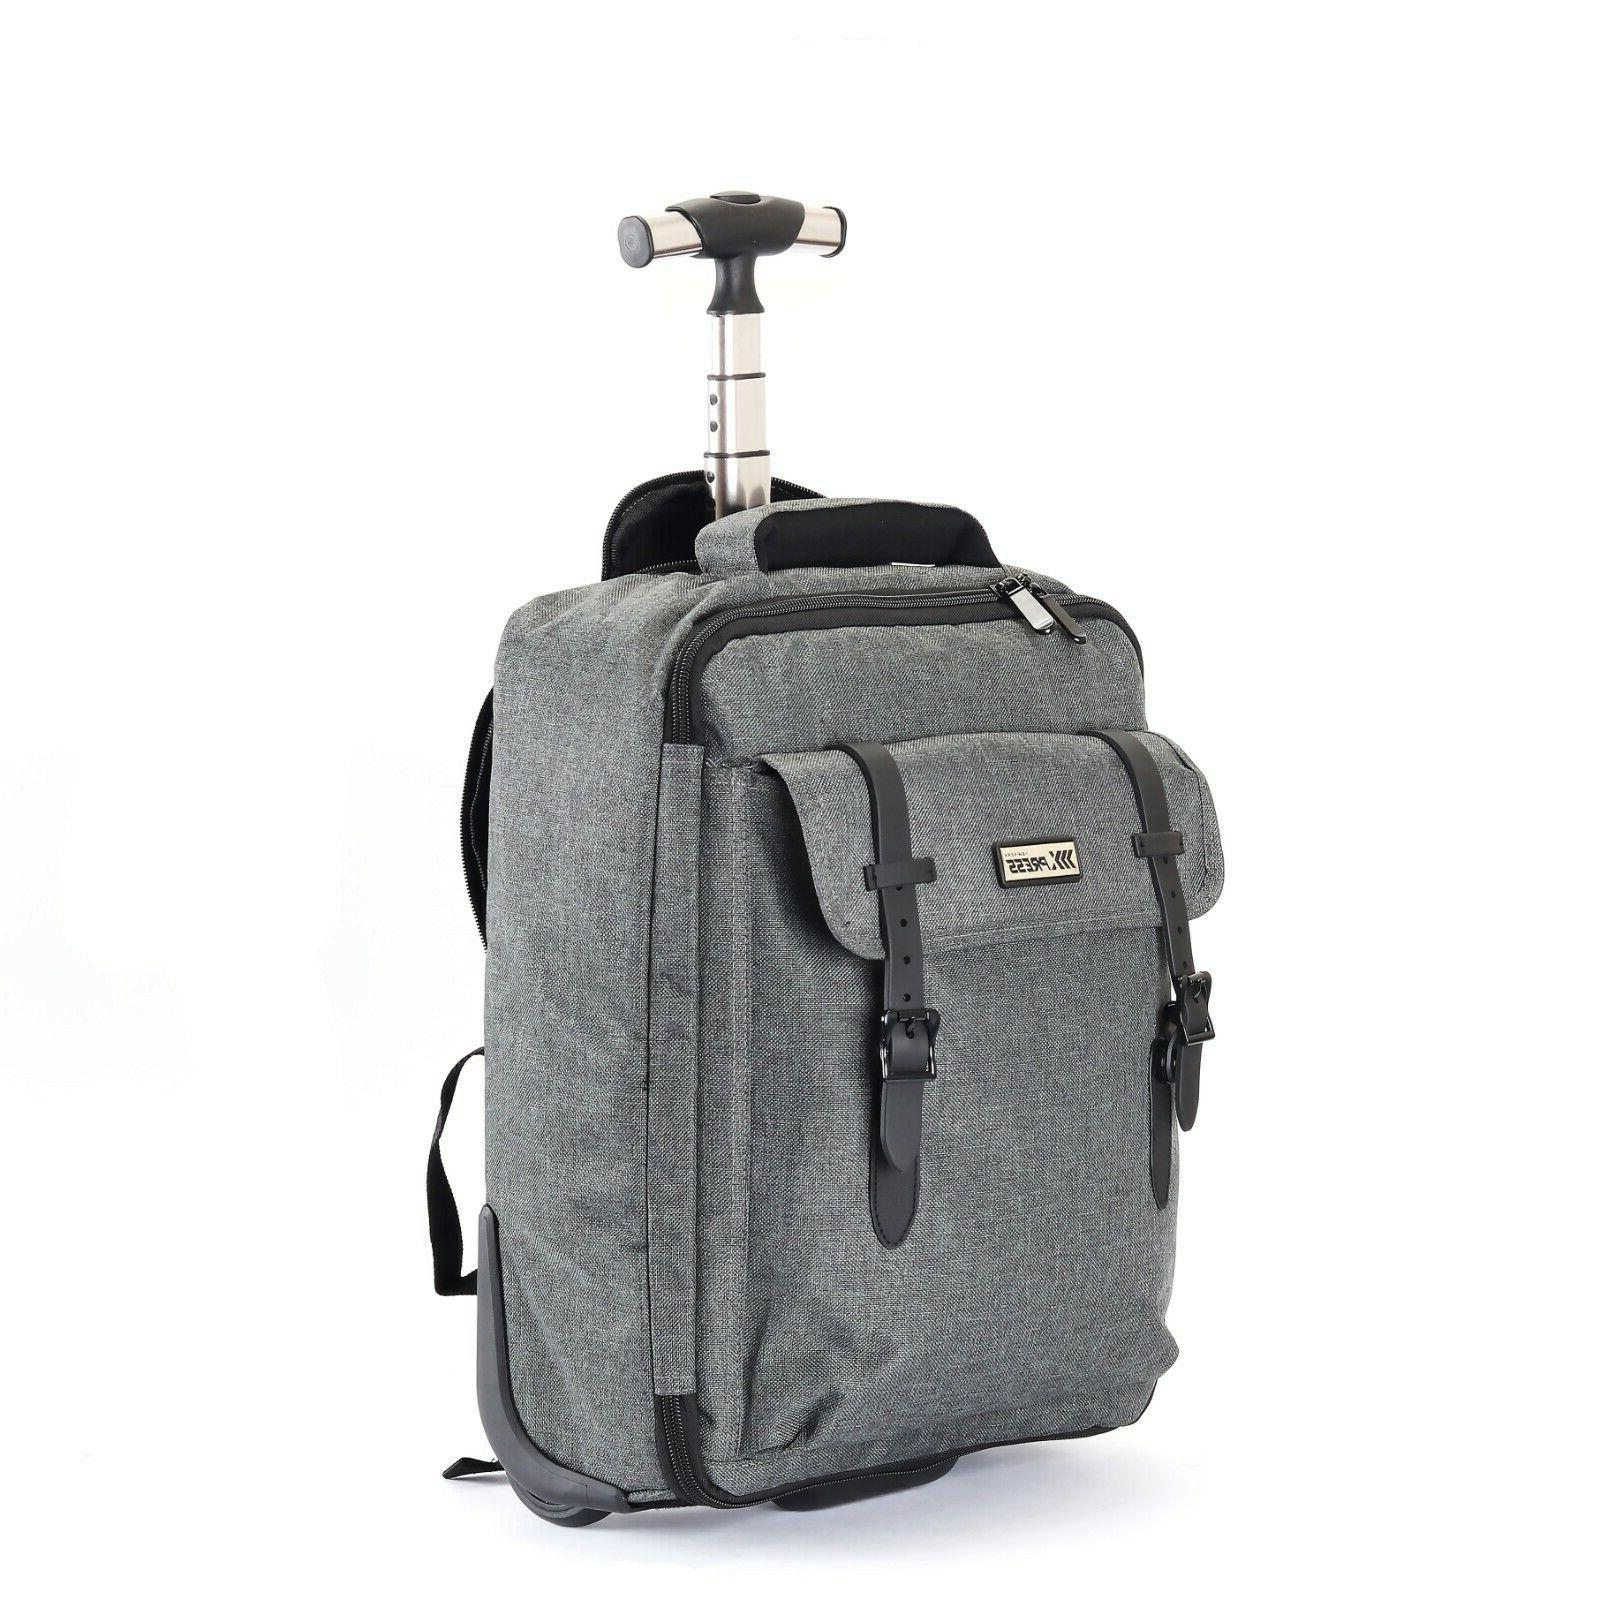 Wheeled Luggage Organizer Bag computer Lightweight